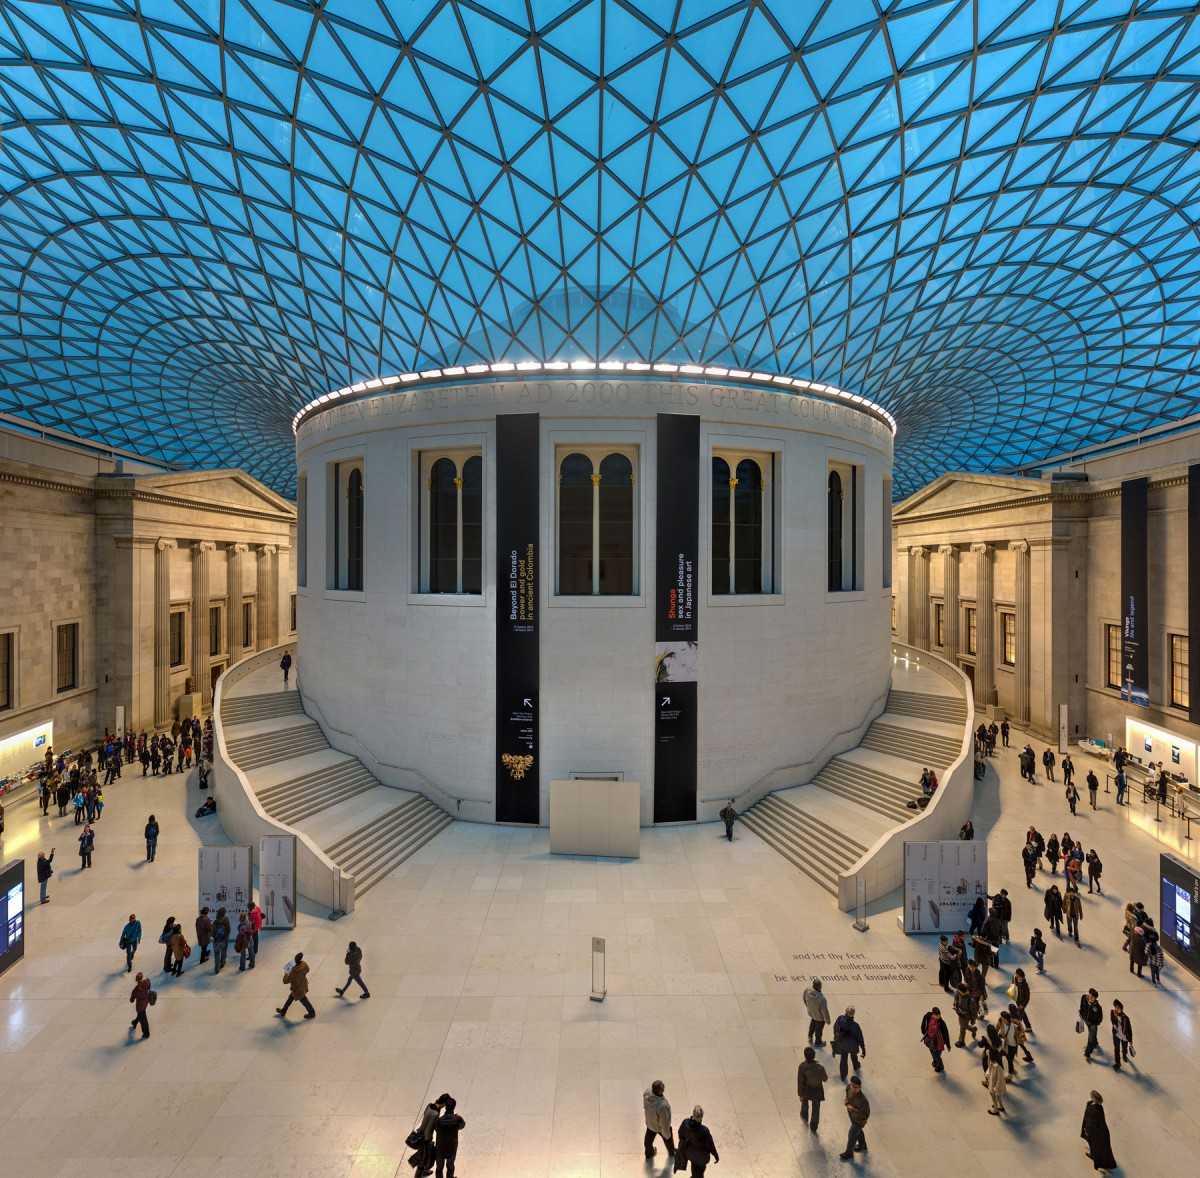 The centre of the British Museum was redeveloped in 2001 to become the Great Court, surrounding the original Reading Room.